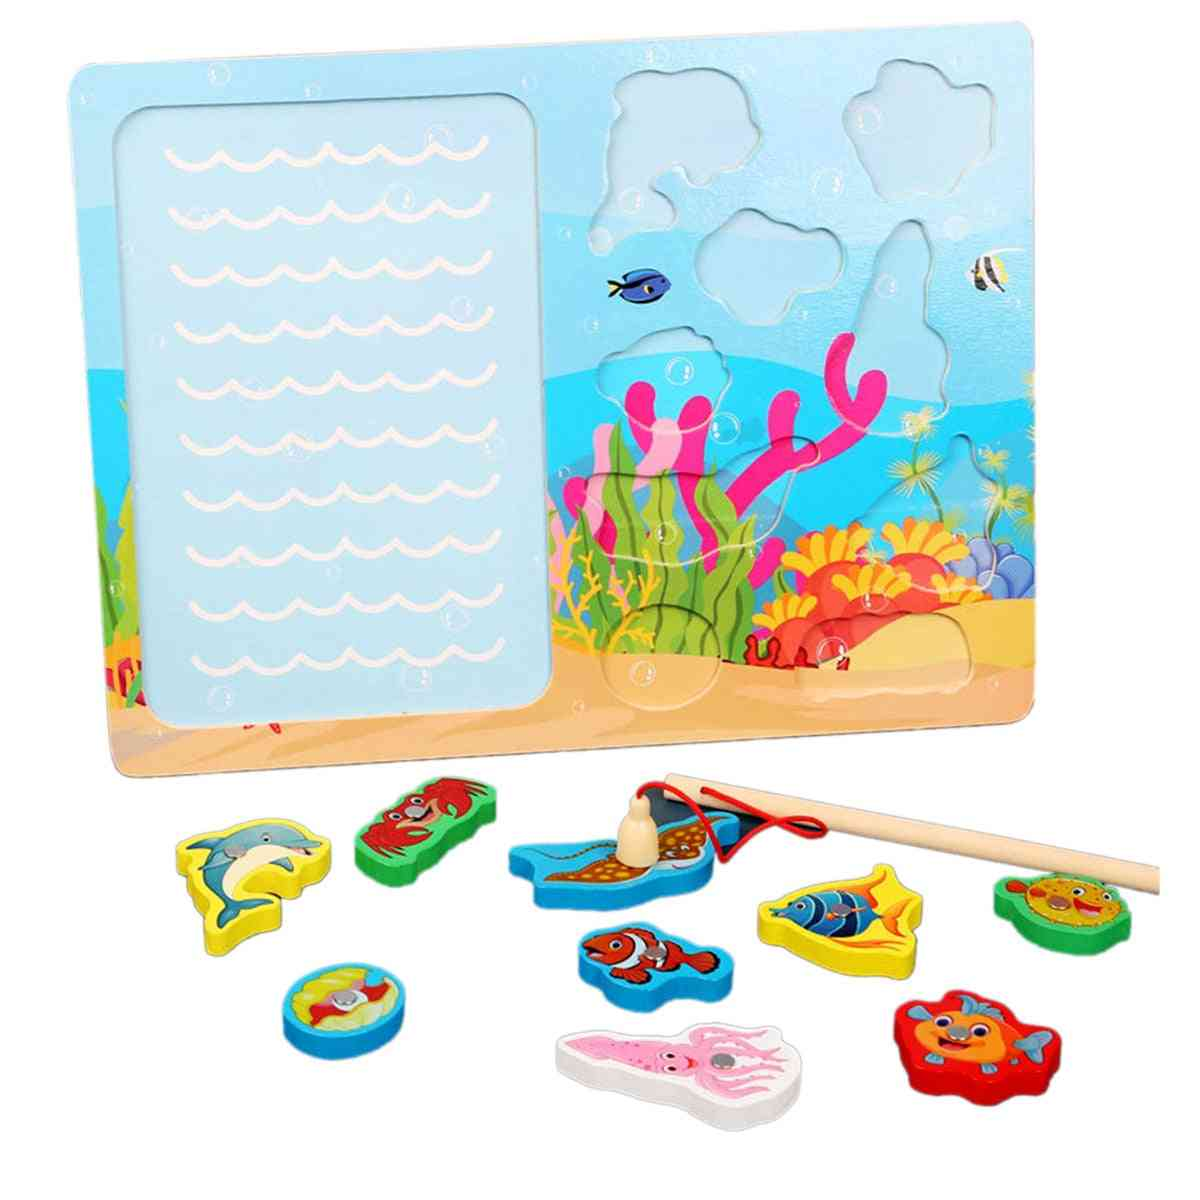 Wooden Magnetic Ocean Fishing Toy Game